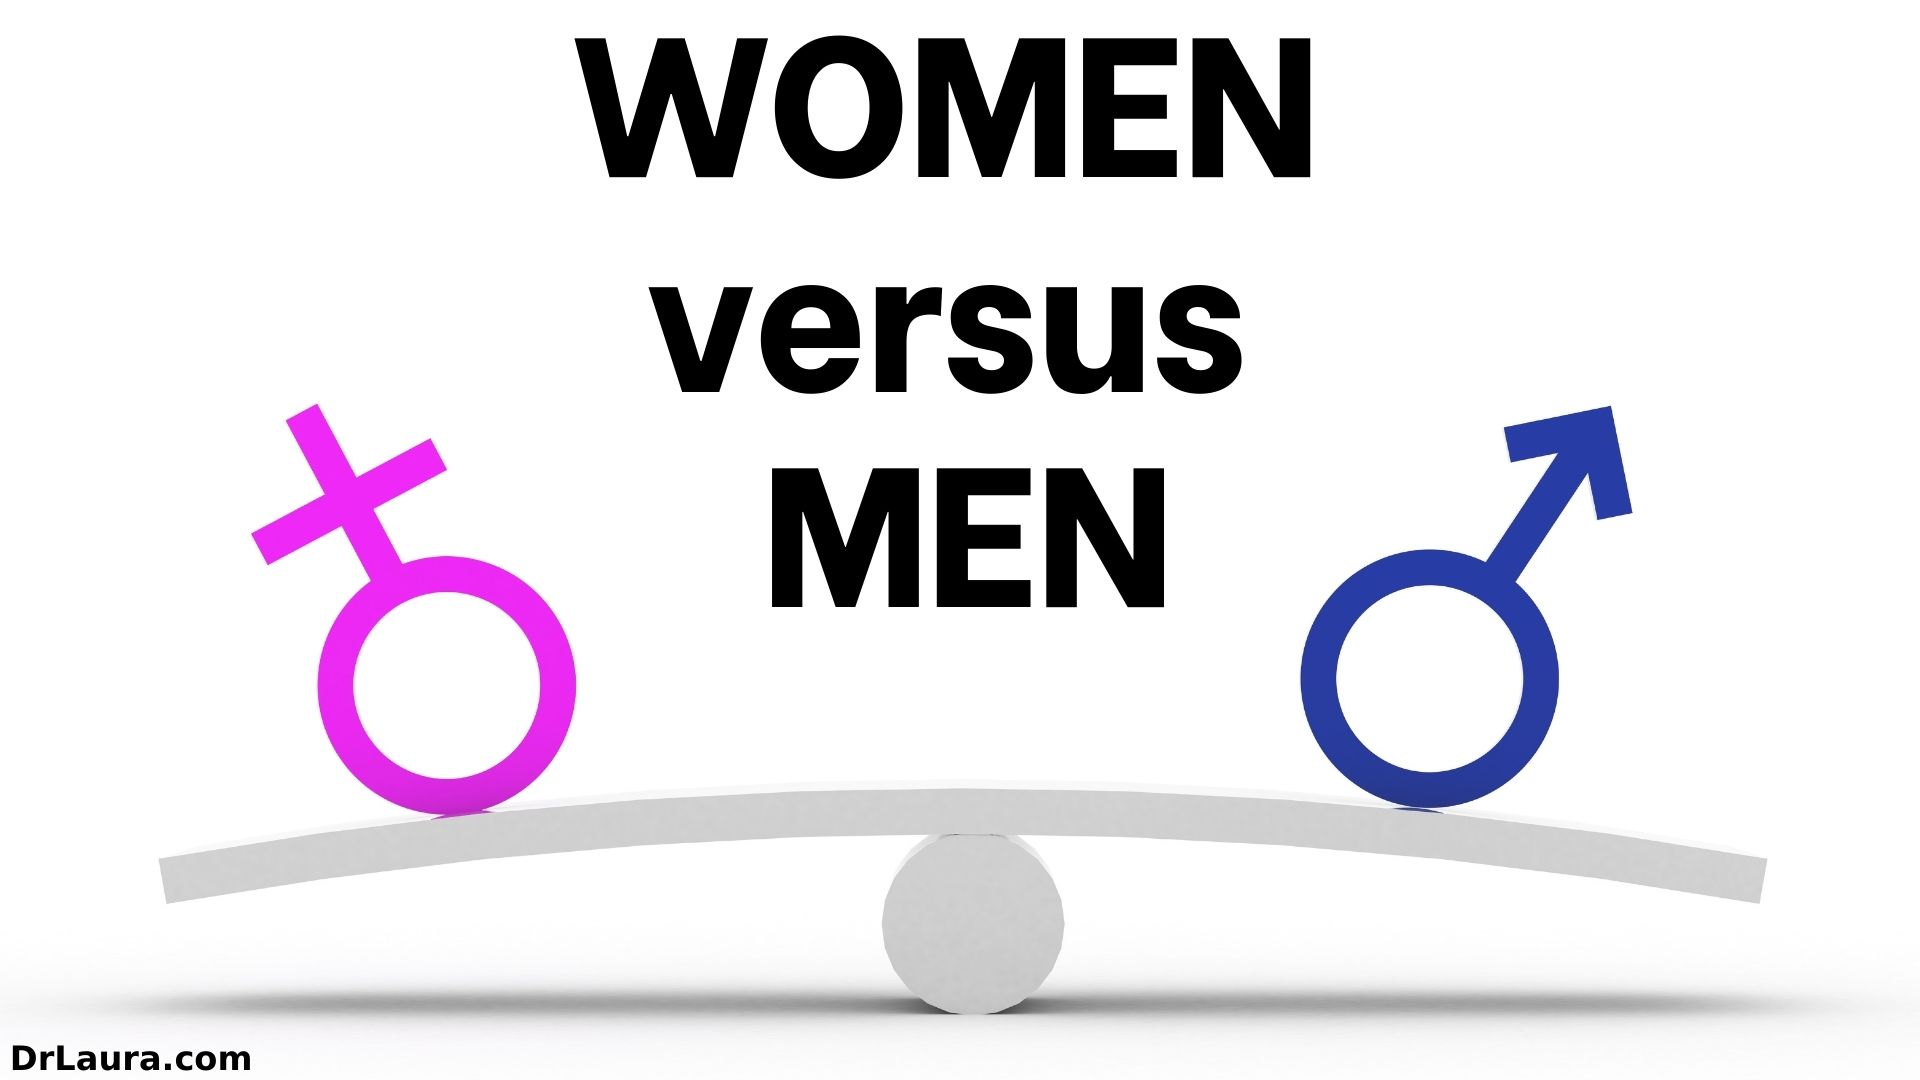 Email of the Day: Differences Between the Sexes